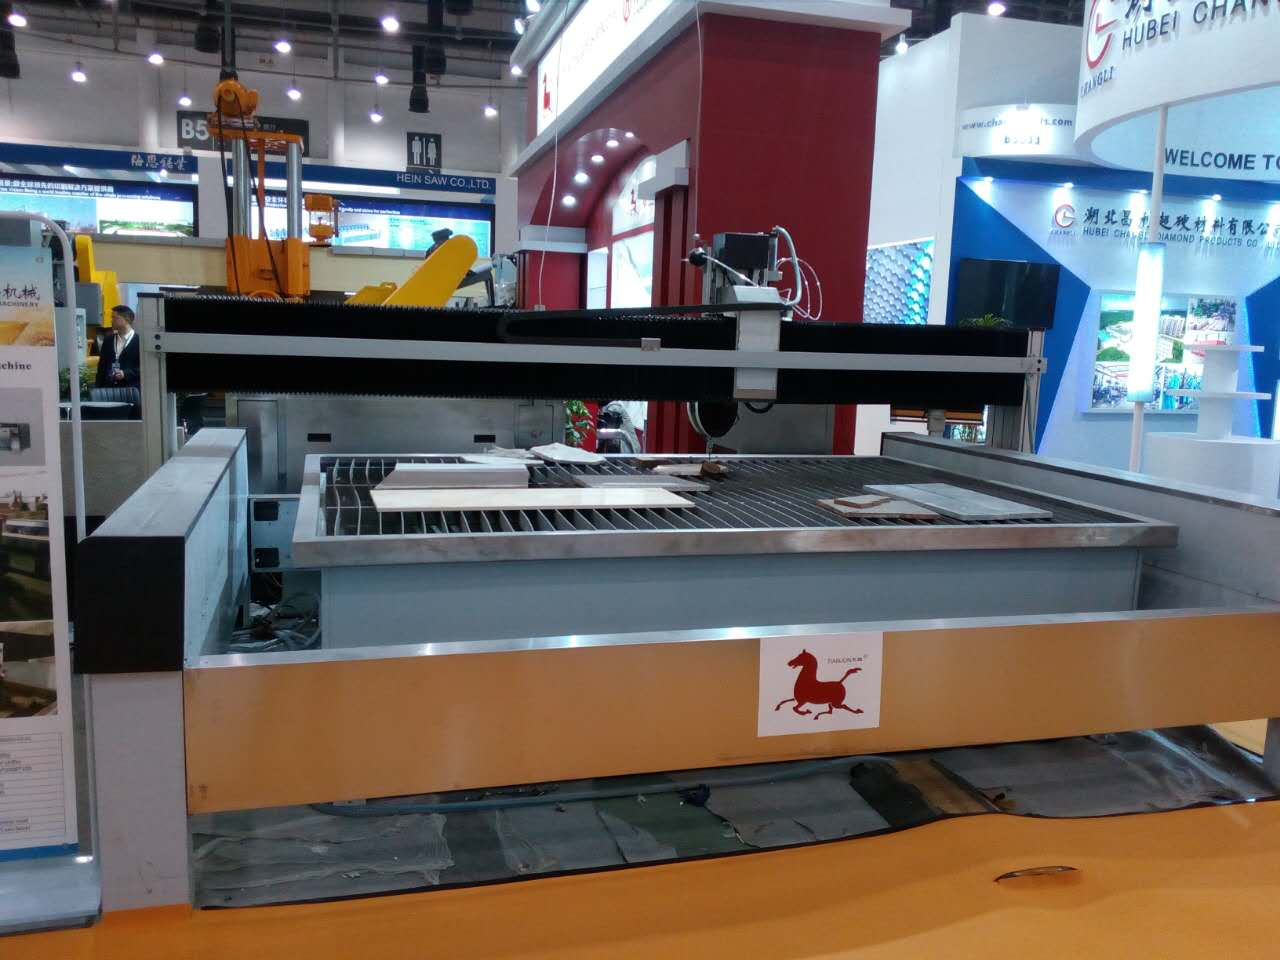 water jet cutting machine.jpg